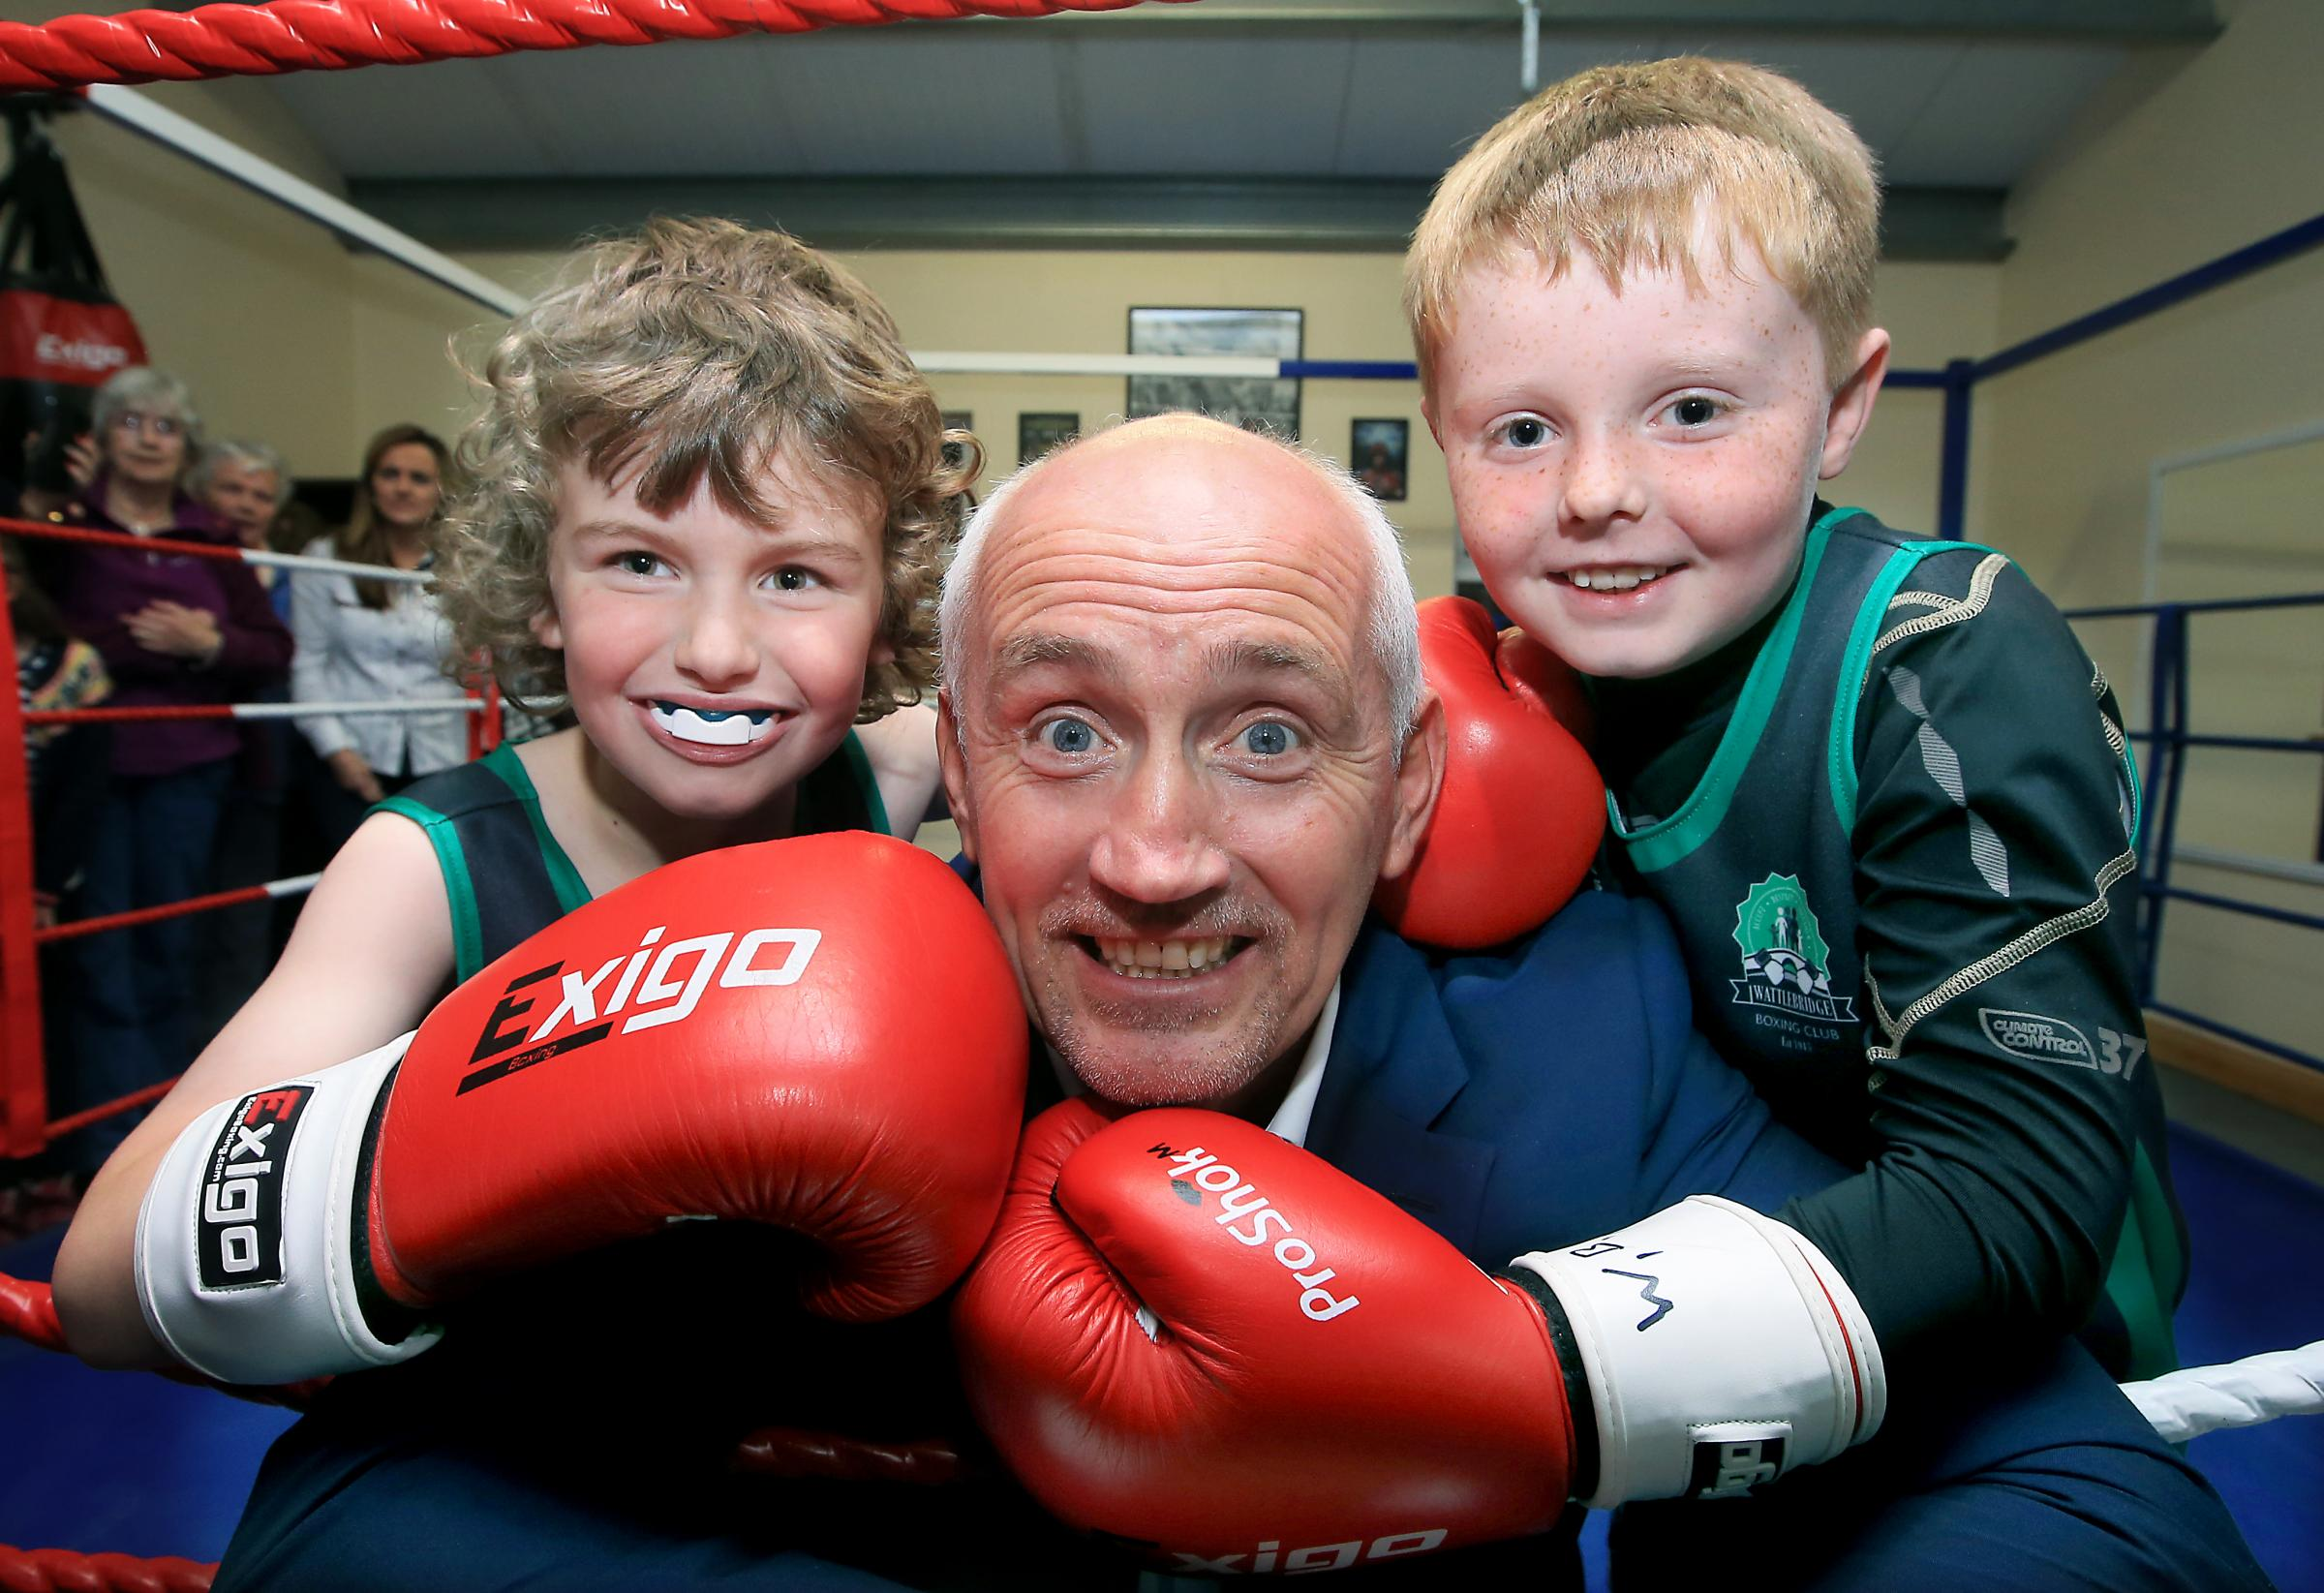 Barry McGuigan who will be the guest of honour at the Impartial  Reporter Celebration of Sport  is pictured with Luke  Sommerville and Seimi Manley  at the opening of Wattlebridge  ABC in 2015.